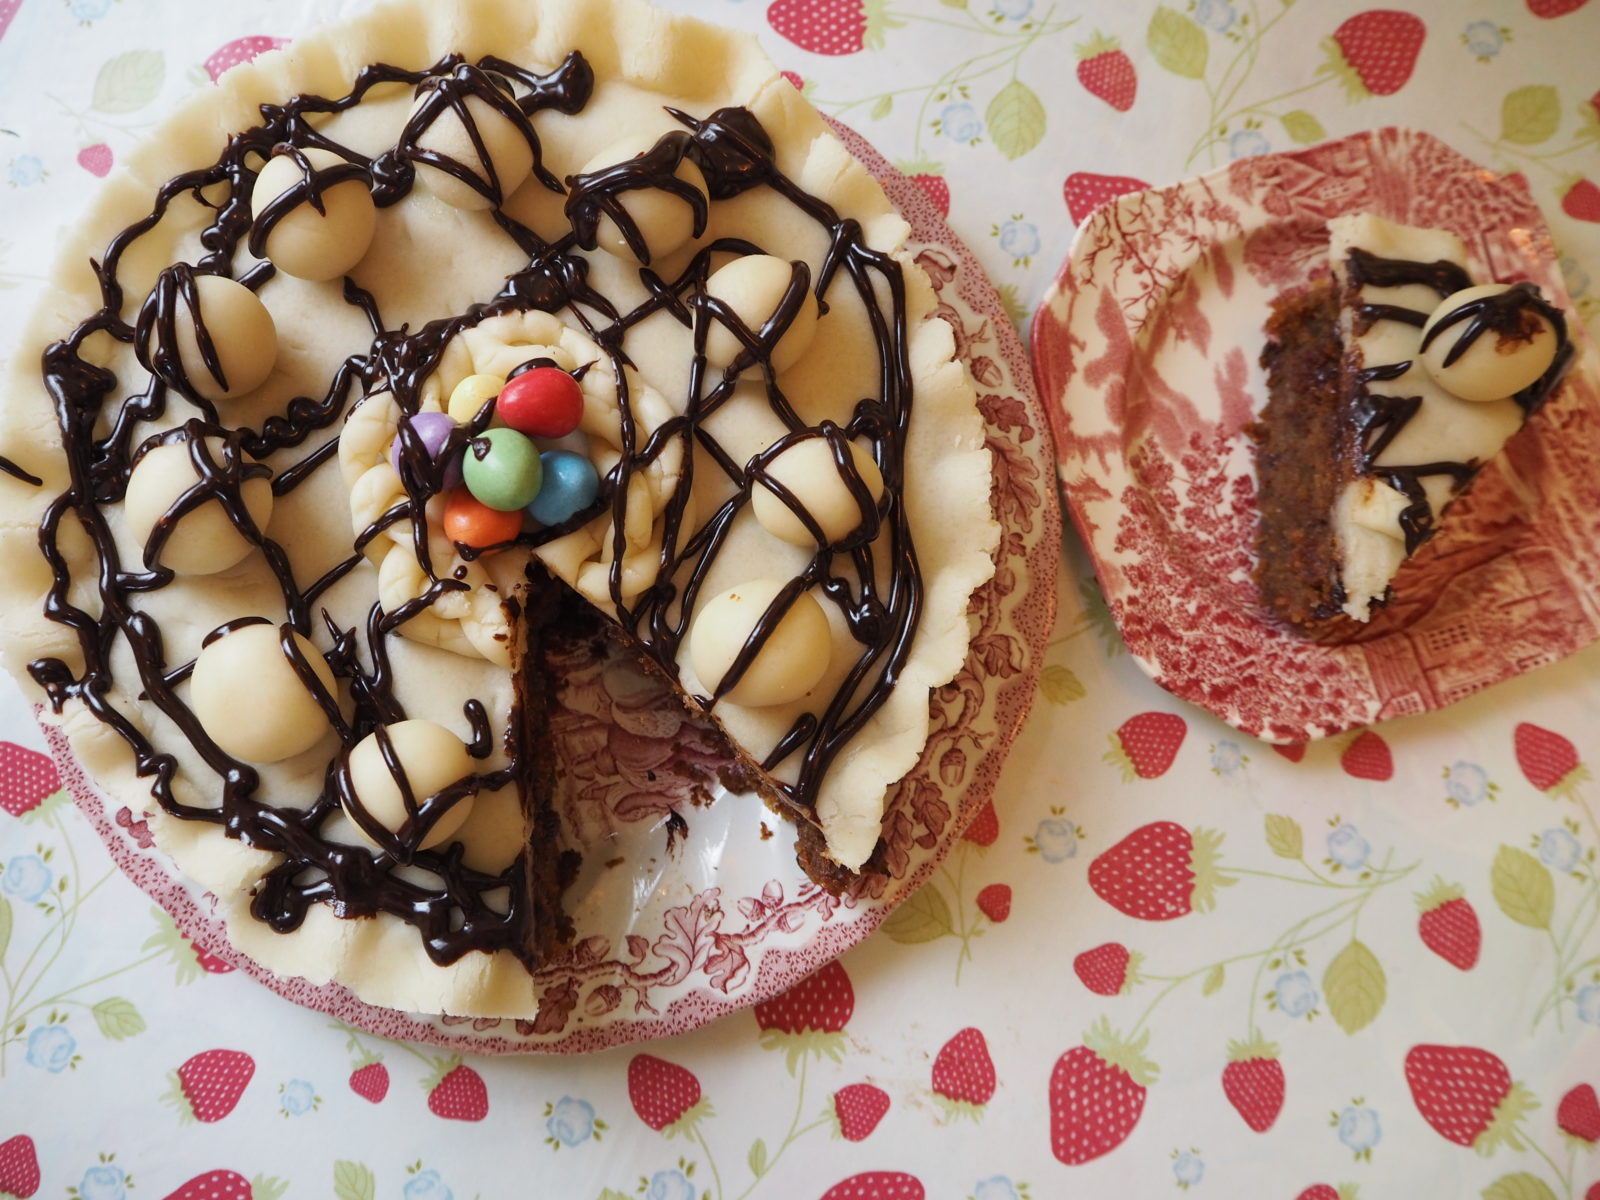 Gluten Free Cake Recipe To Use Currants